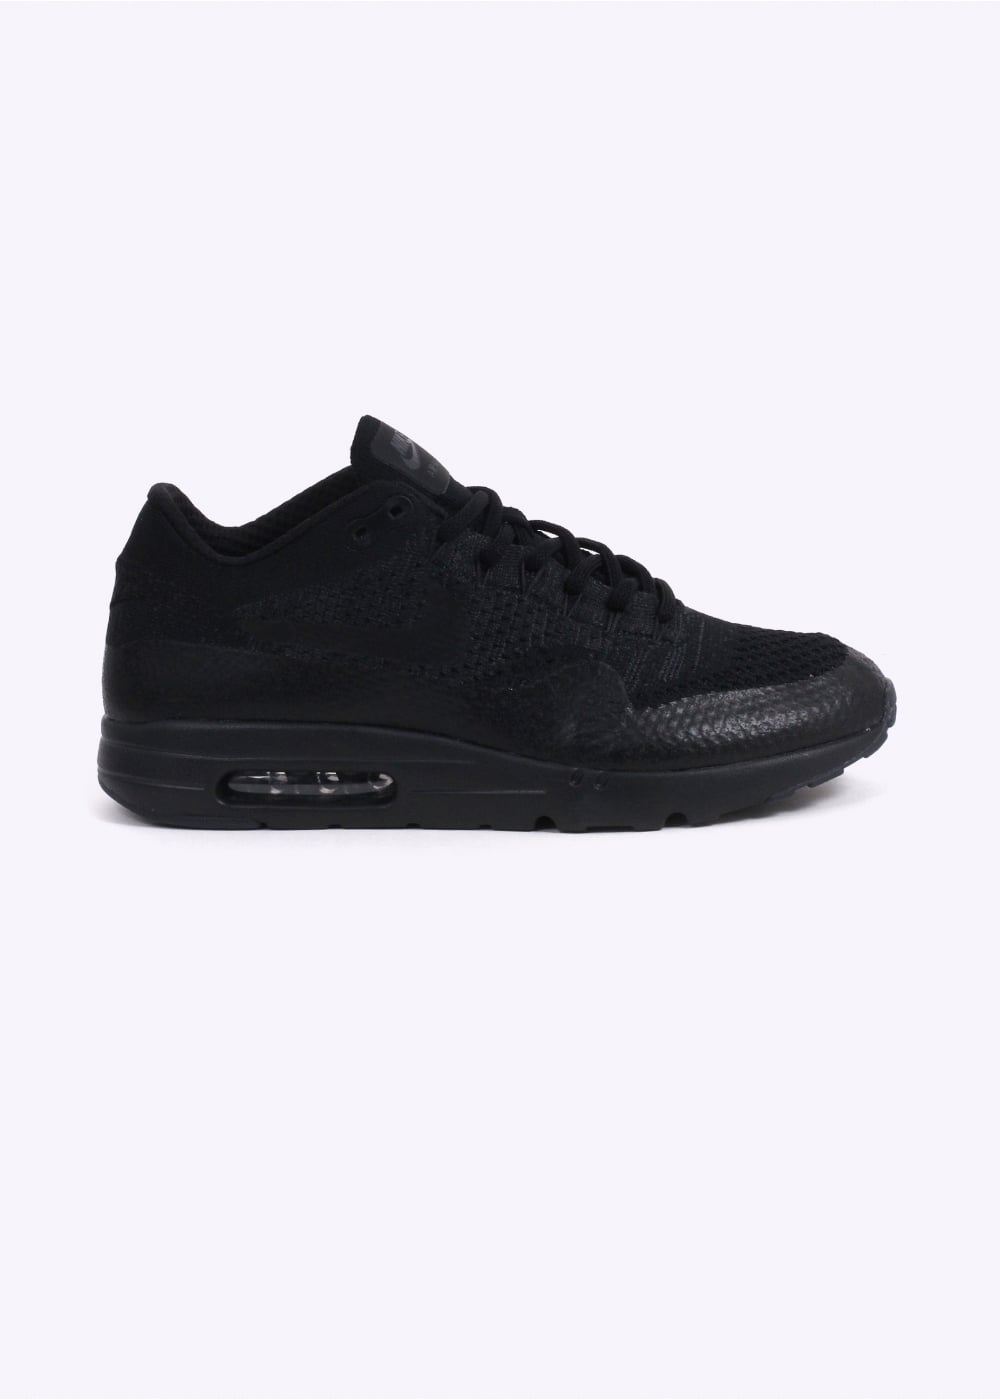 official photos 07571 0be2d Nike Footwear Air Max 1 Ultra Flyknit - Black